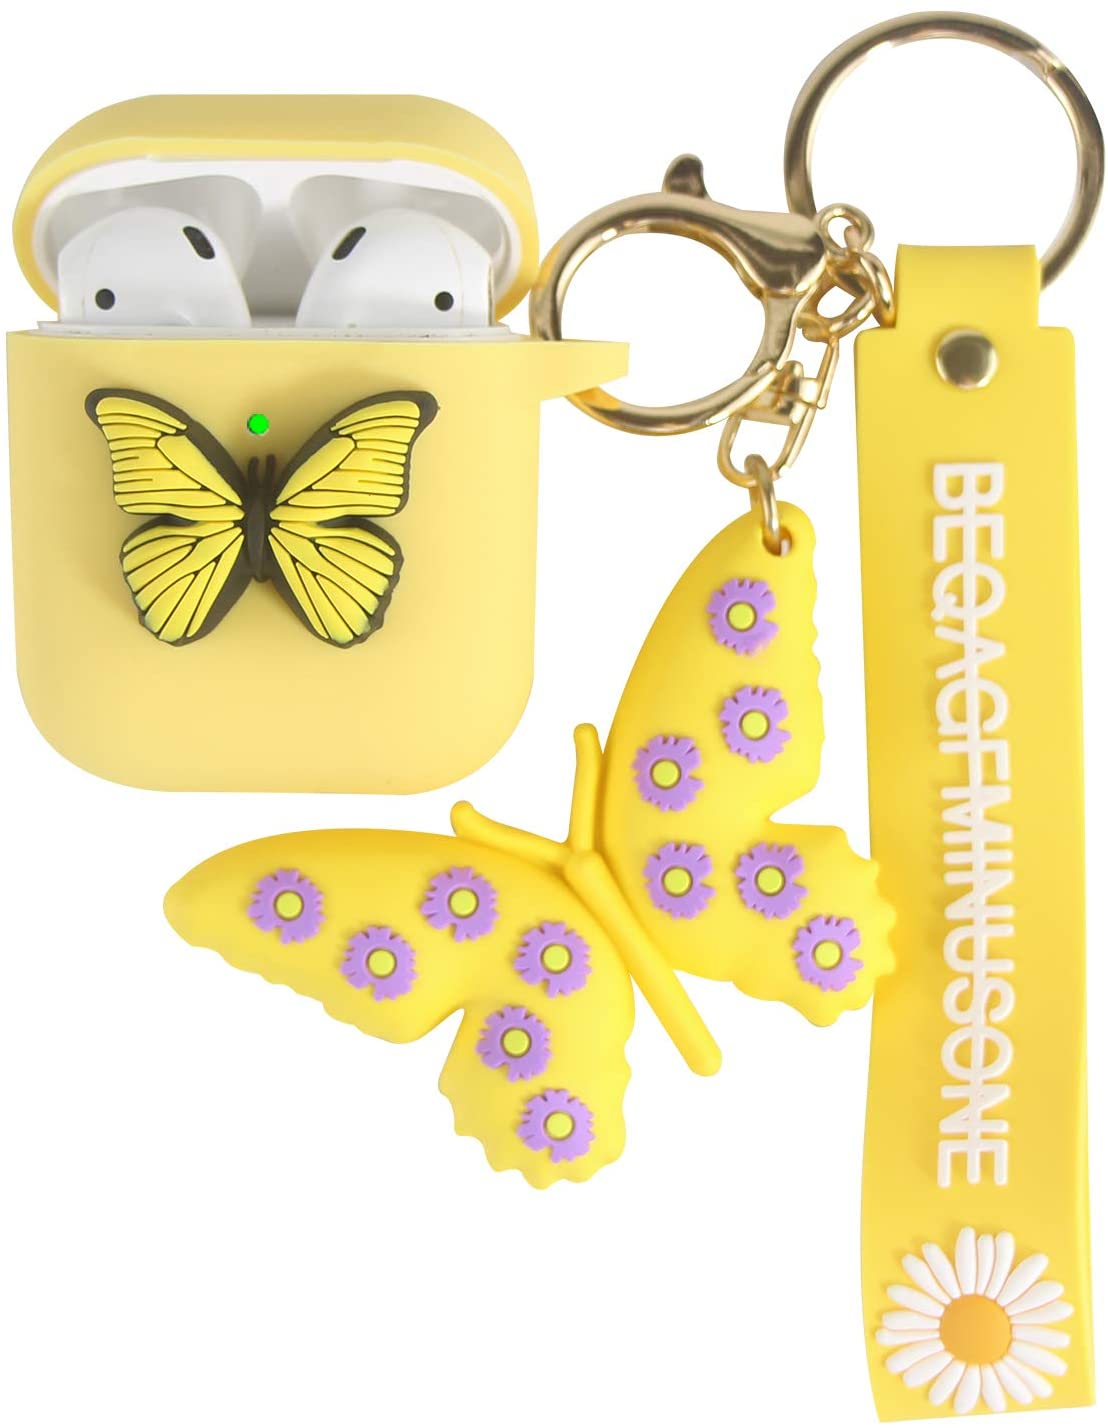 Heniu for Airpod Case, 3D Butterfly Silicone Airpods Case Cute Cover with Keychain Compatible for Apple Airpods 2&1 Charging Case-Yellow